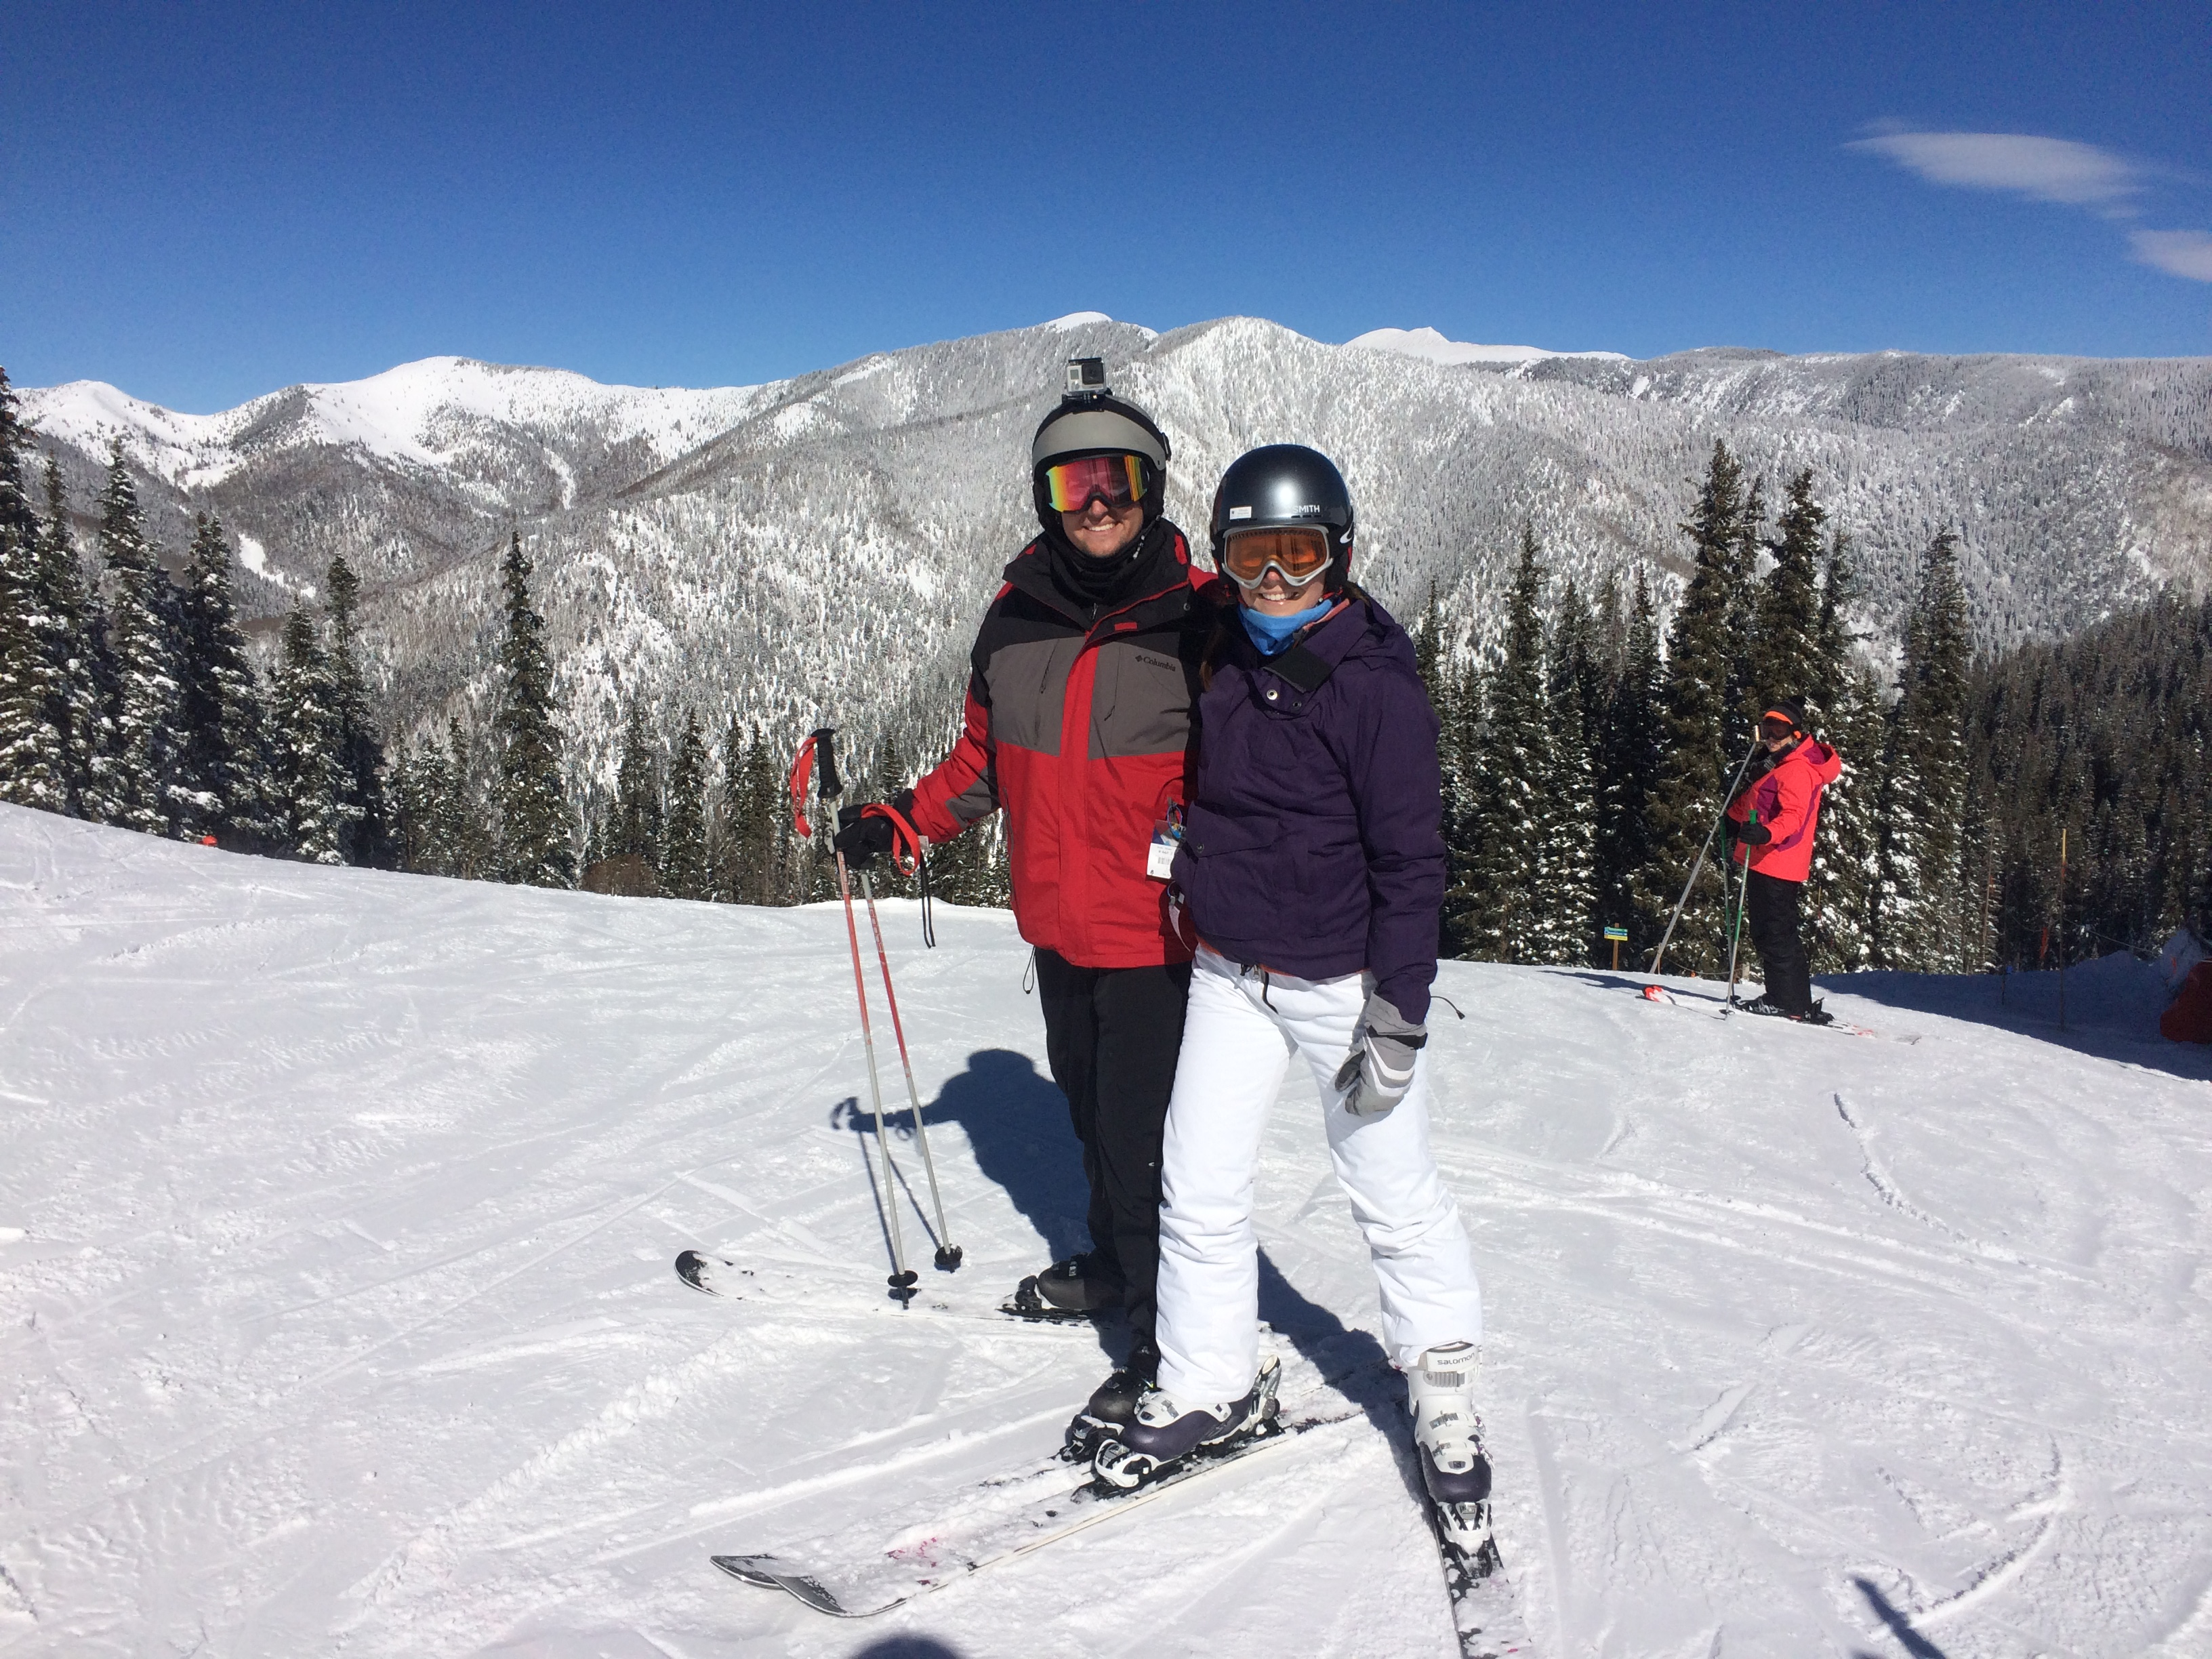 image (1) copy 5.jpeg